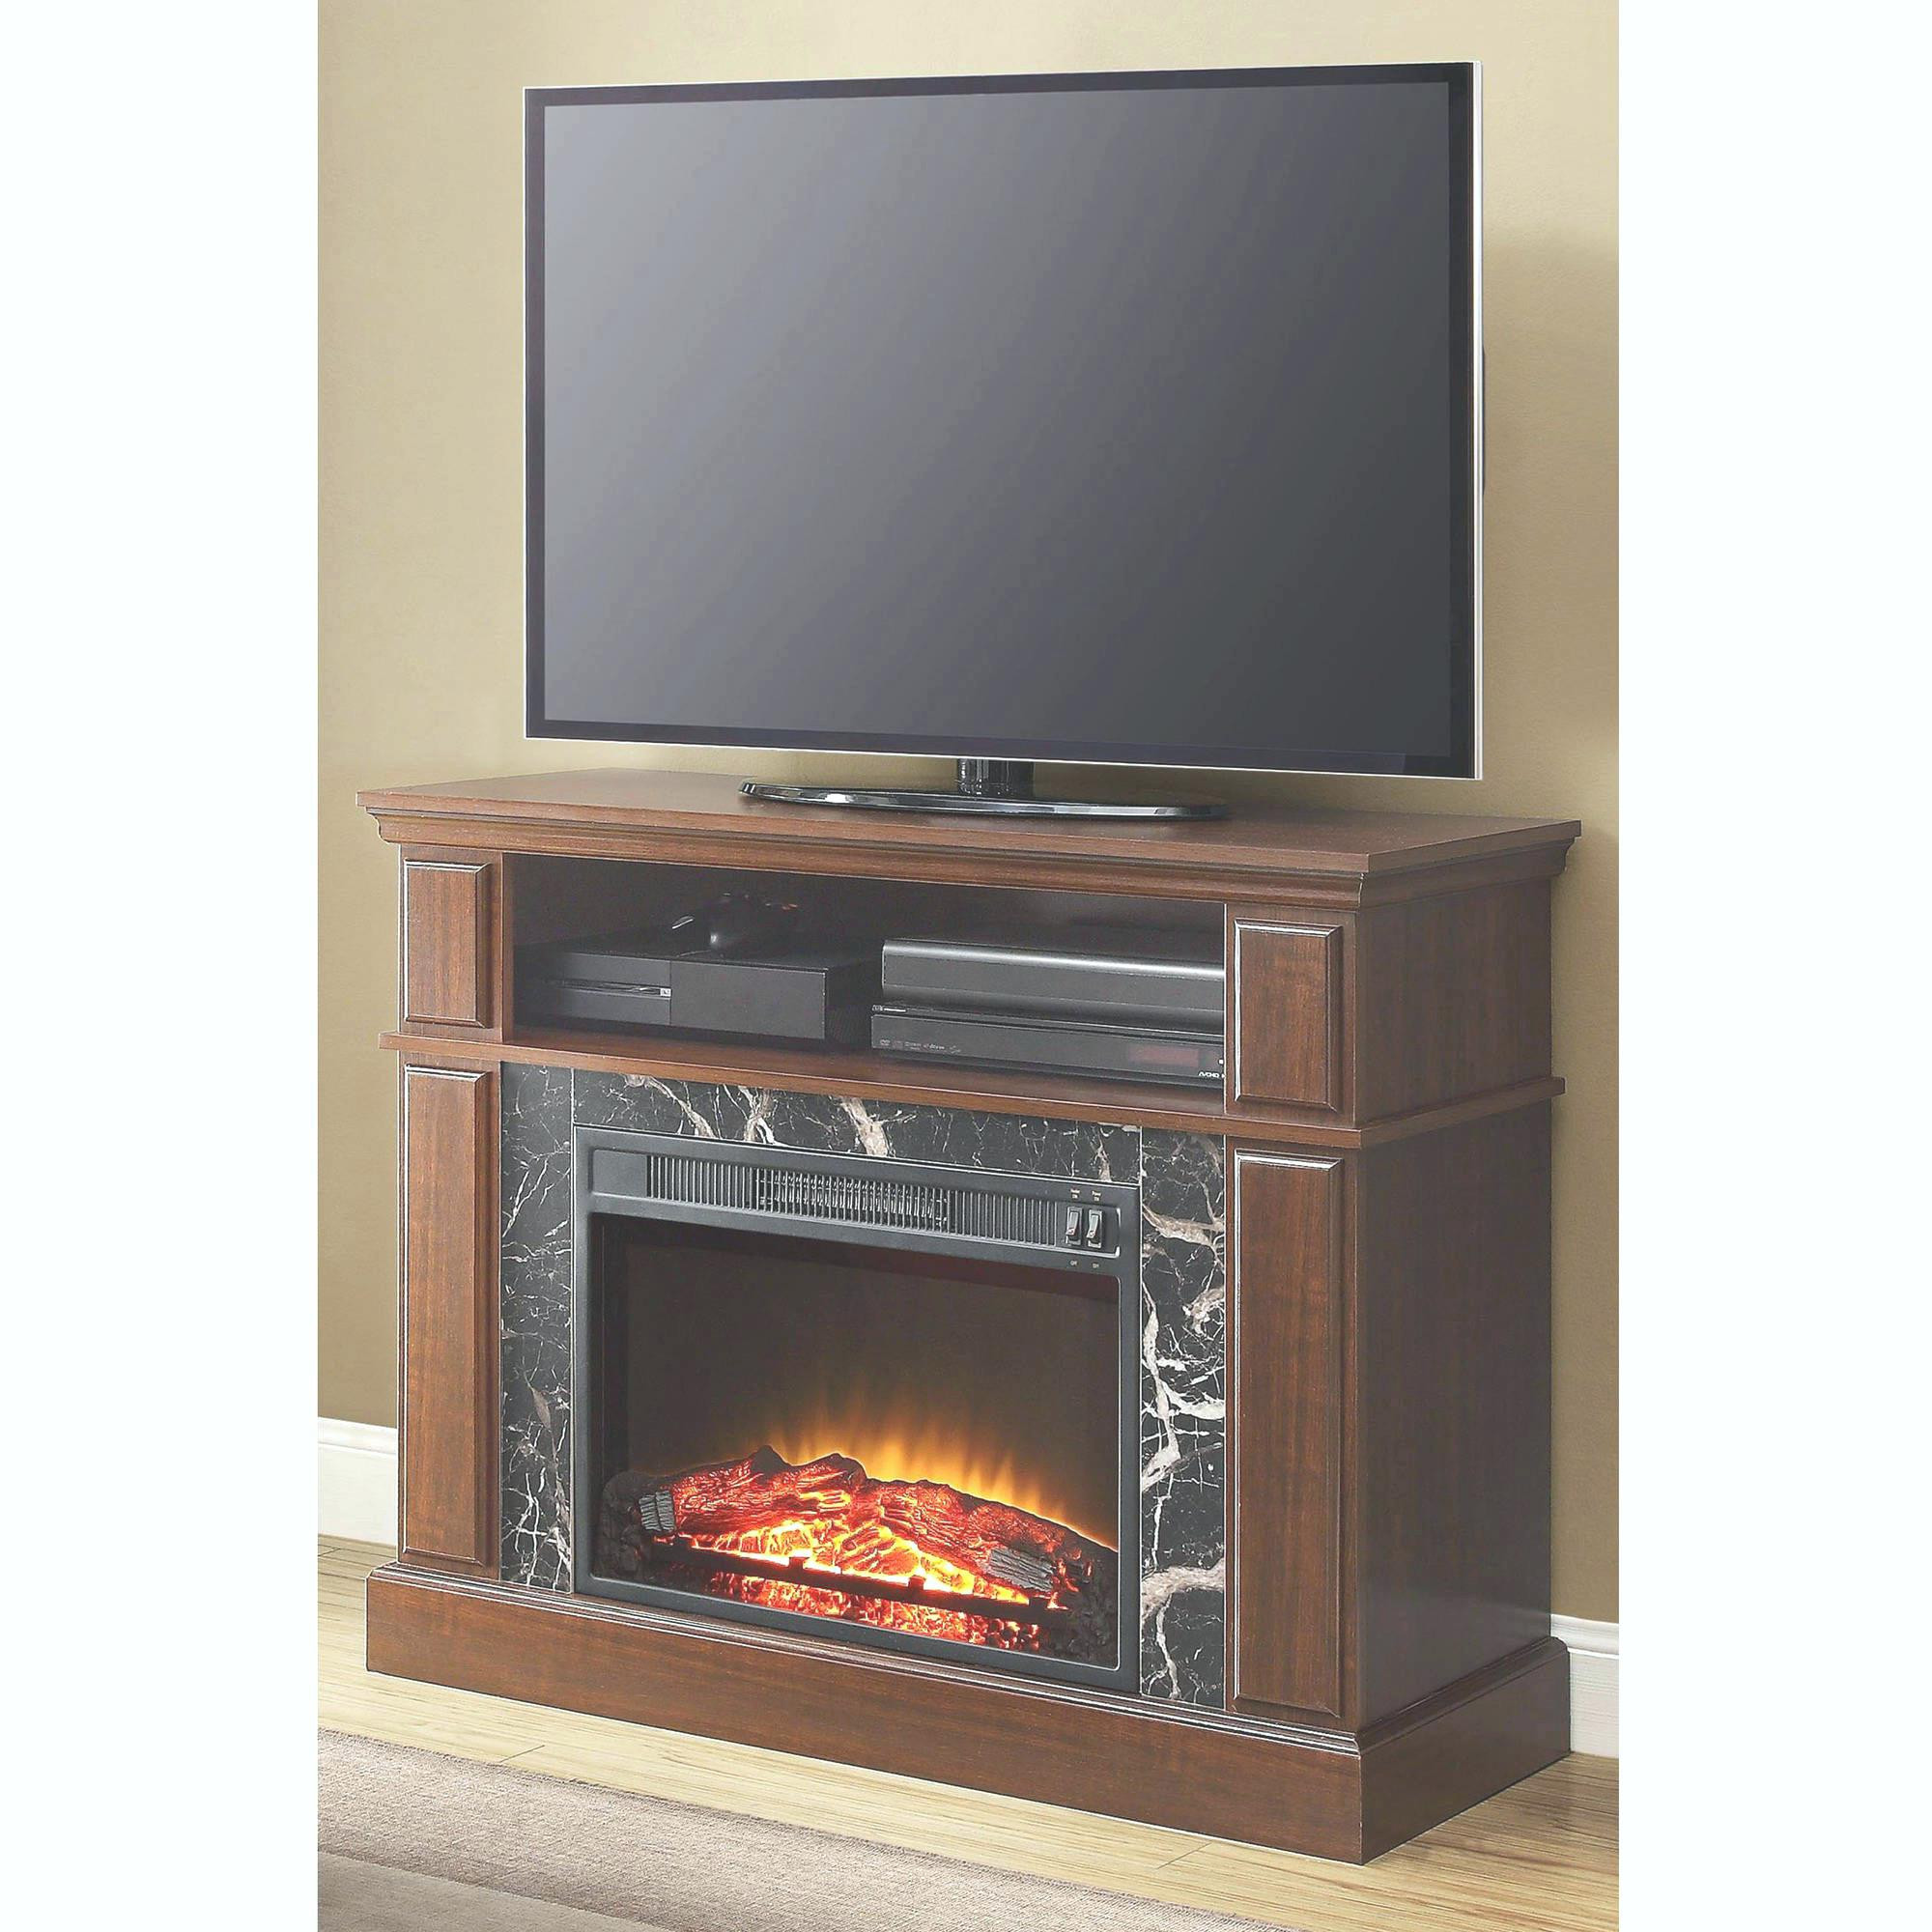 Best ideas about Electric Fireplace Tv Stands Costco . Save or Pin Costco Electric Fireplace Now.